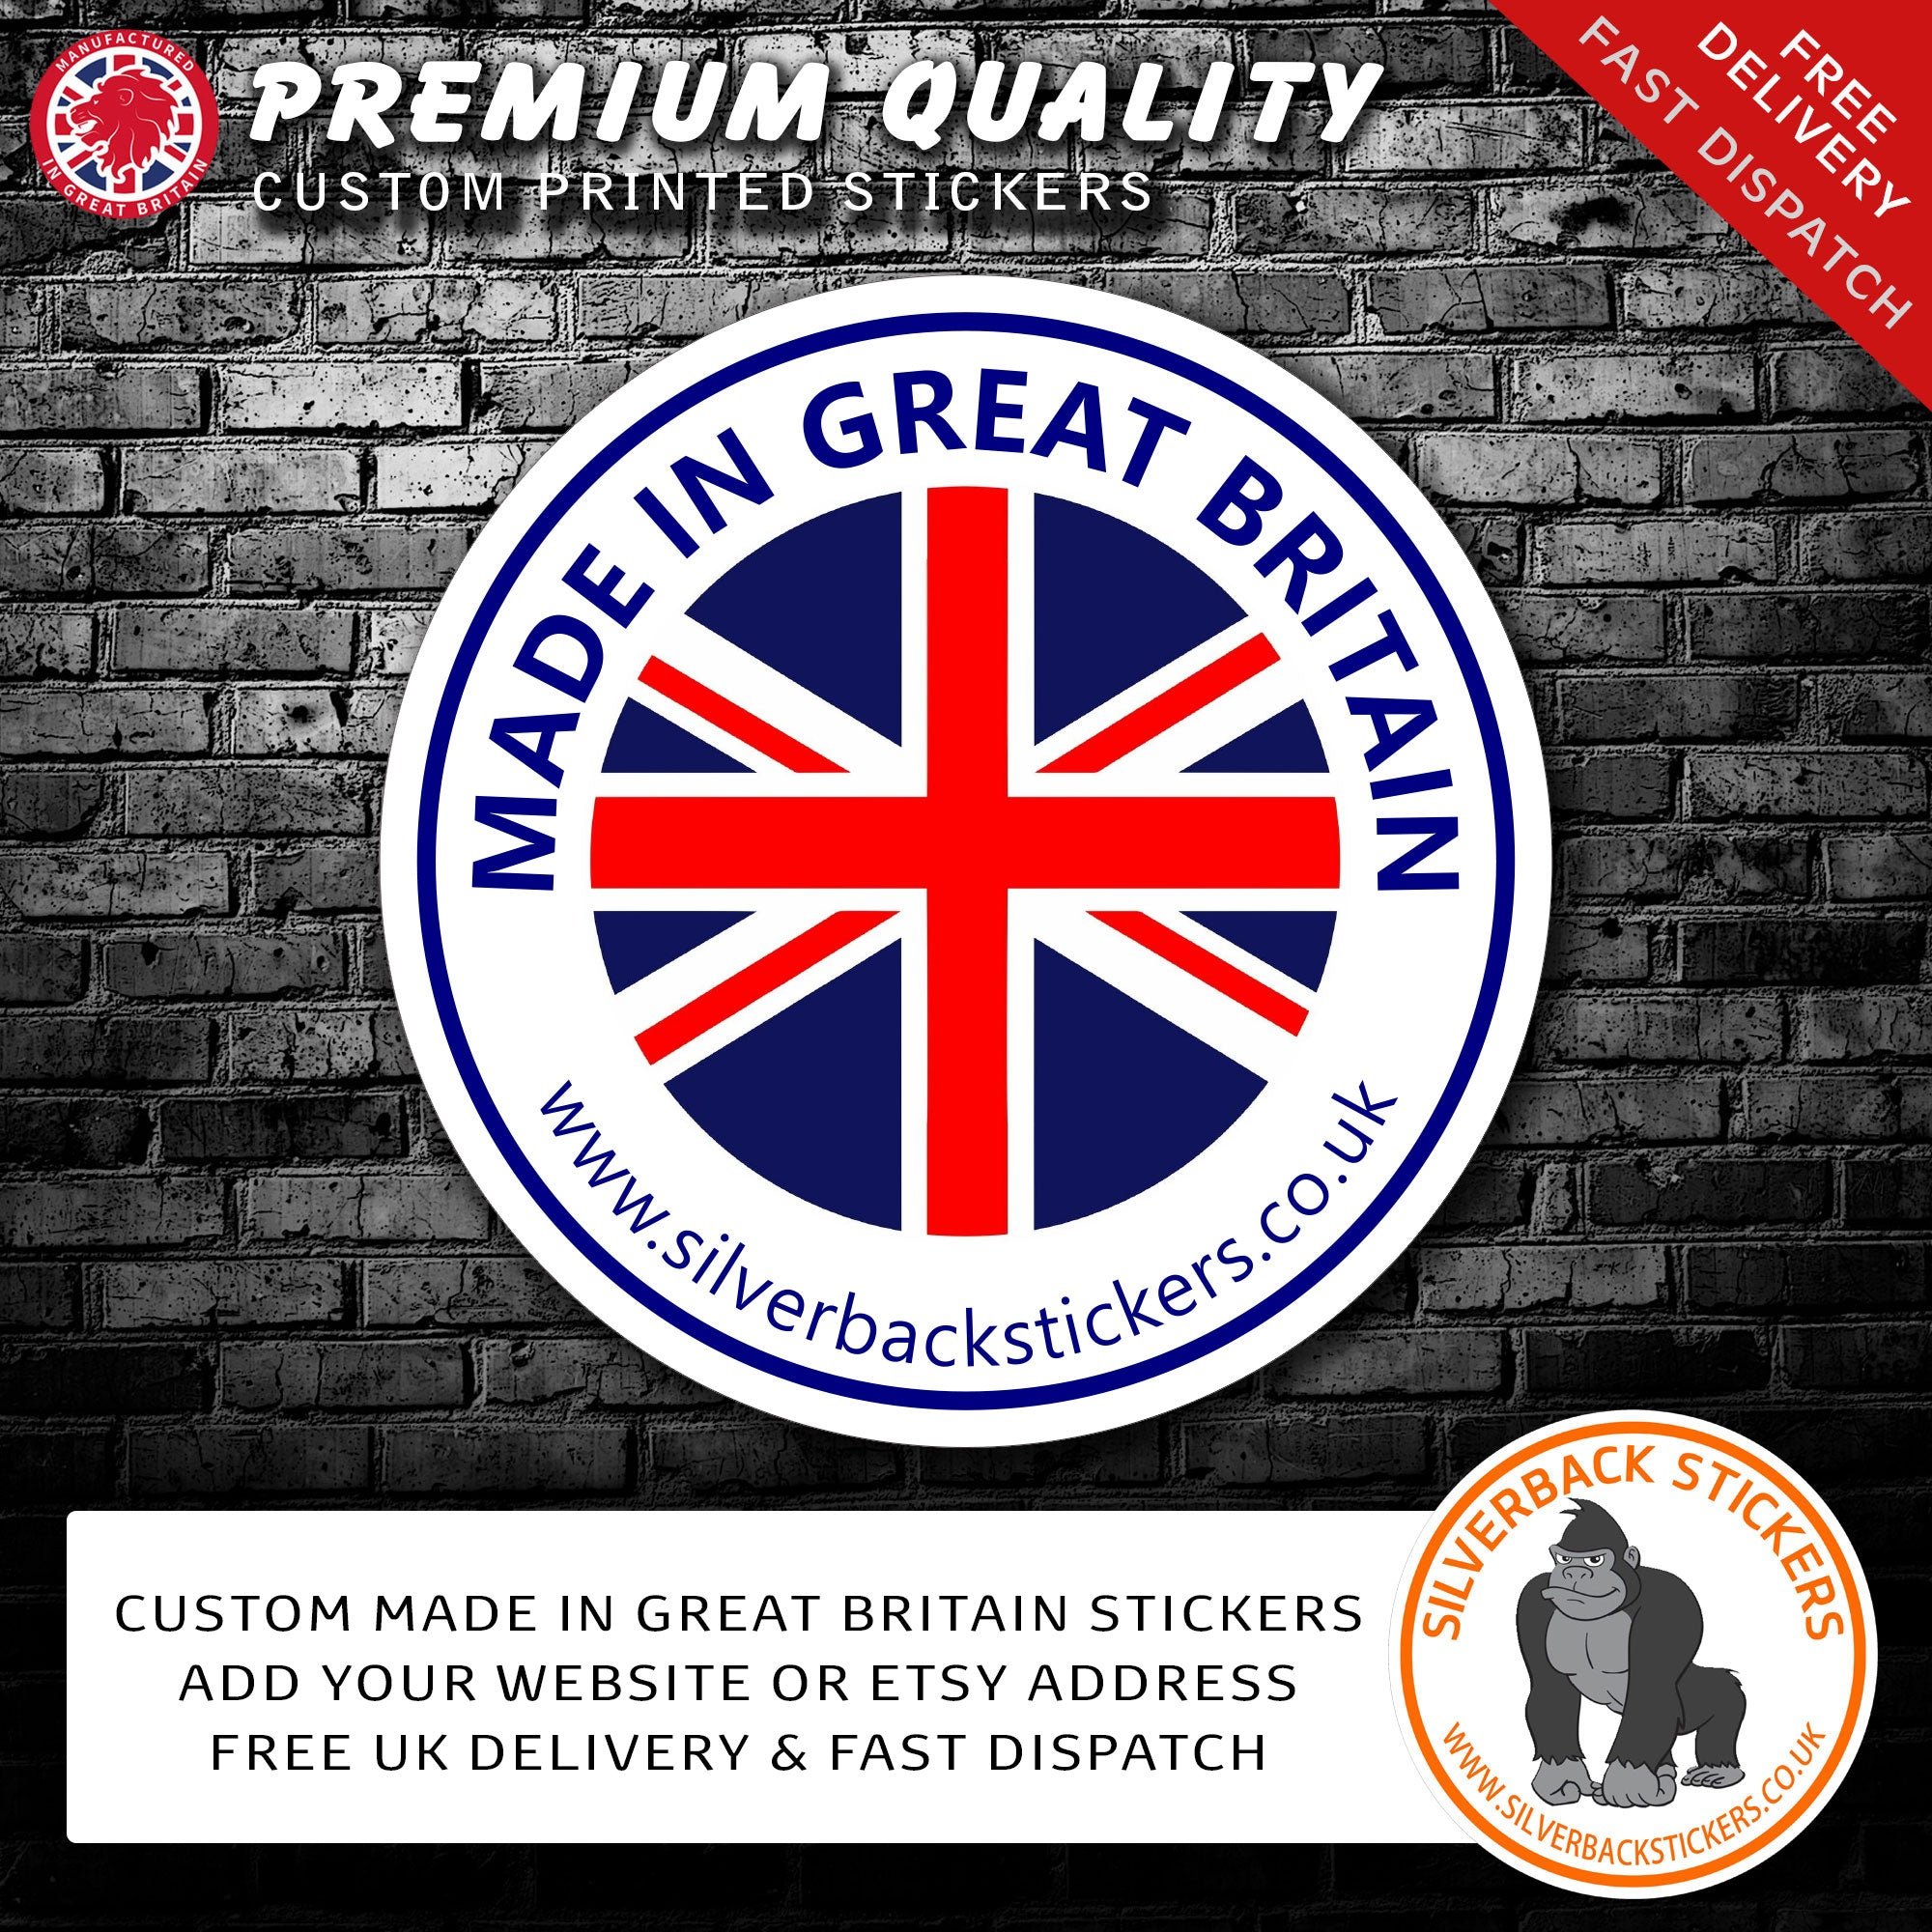 made in Great Britain stickers